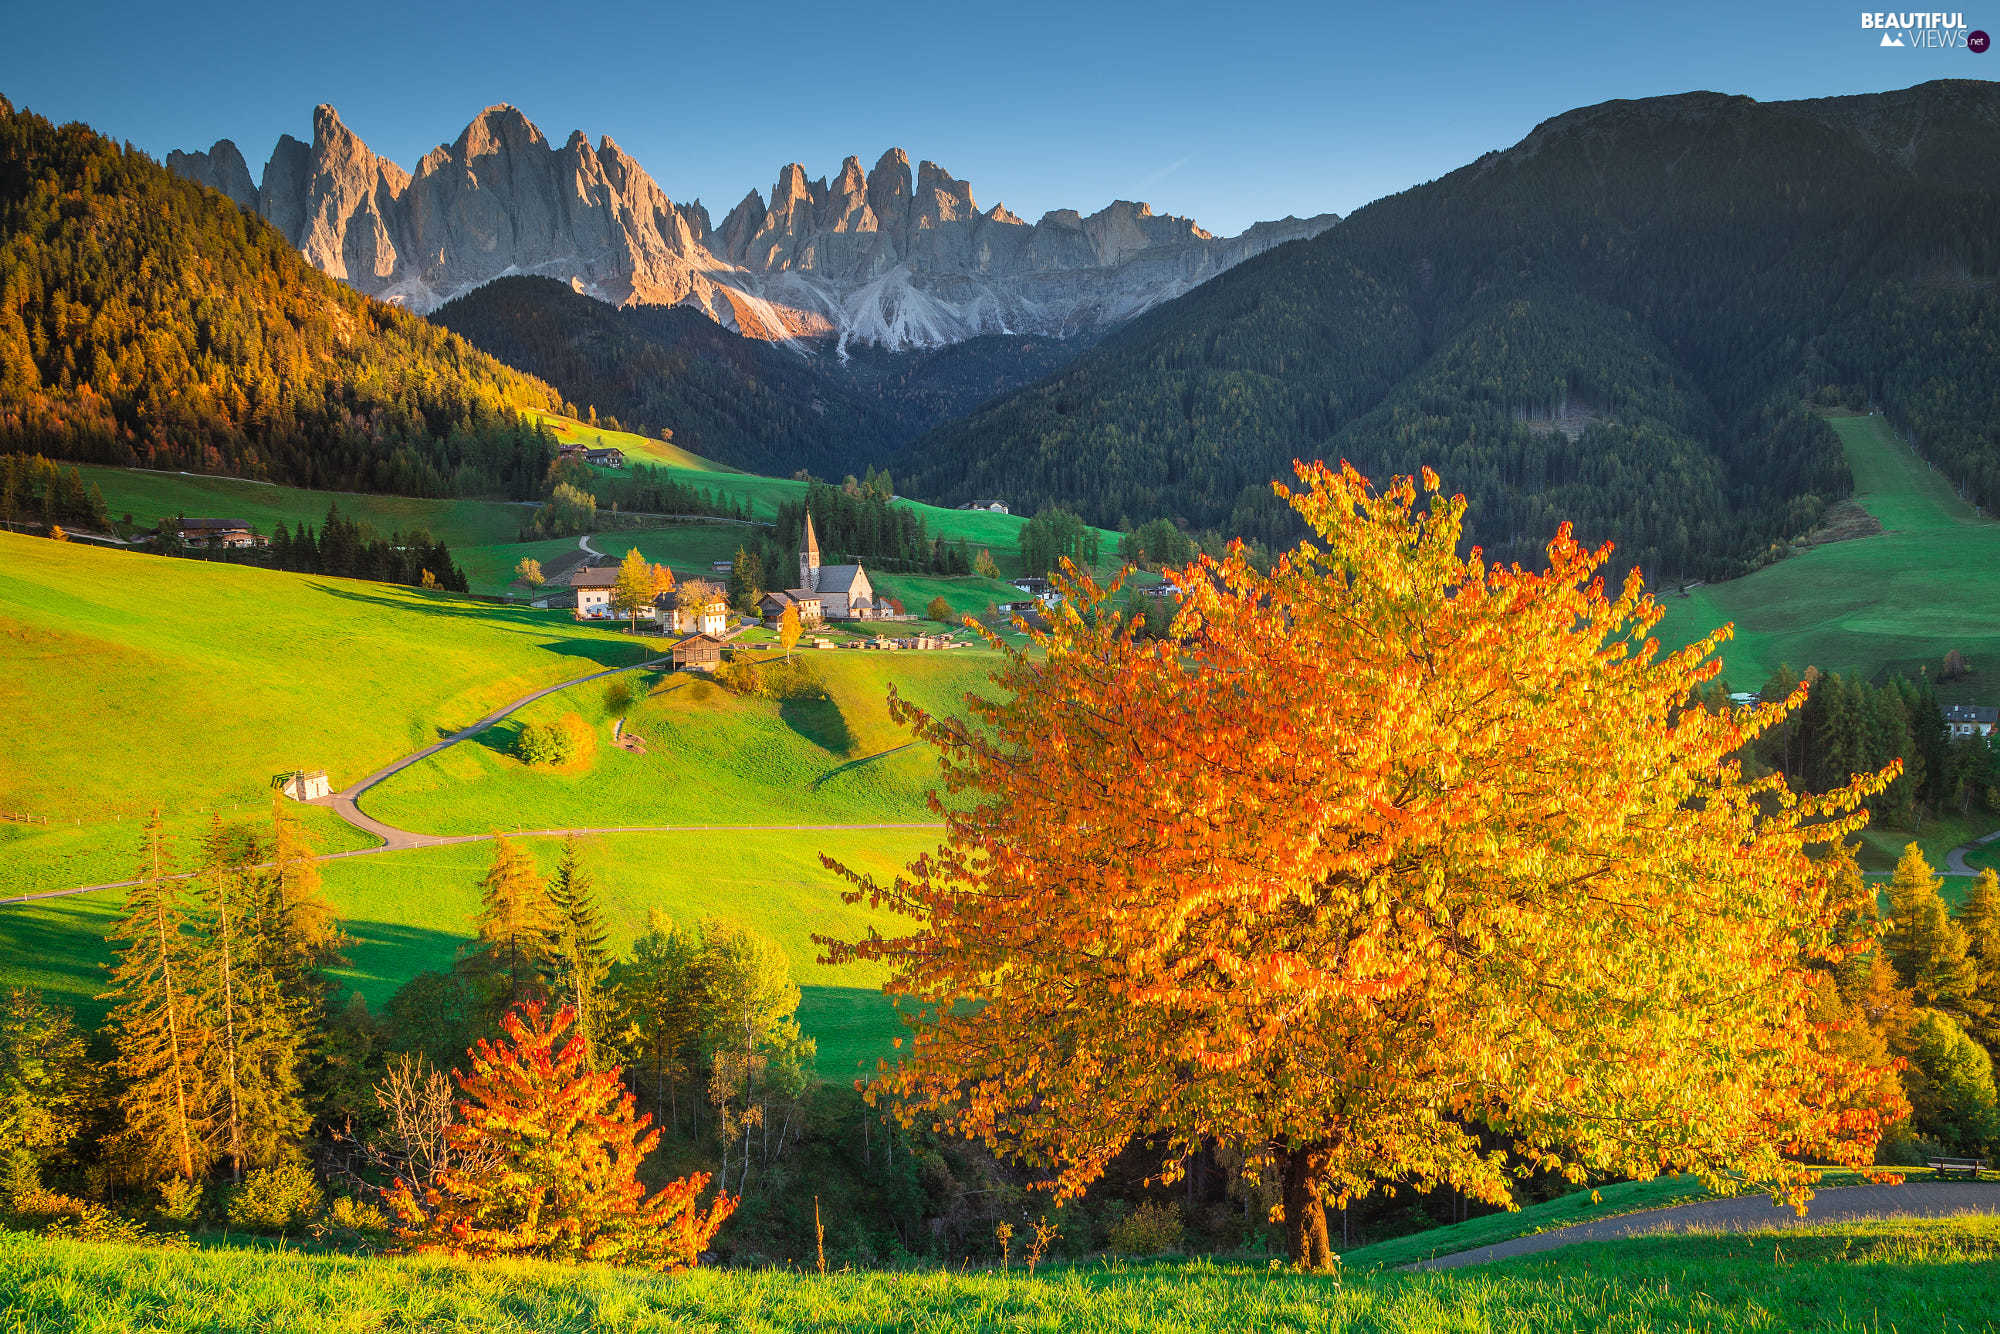 Mountains, viewes, woods, trees, Massif Odle, autumn, Dolomites, Italy, Val di Funes Valley, Church, Village of Santa Maddalena